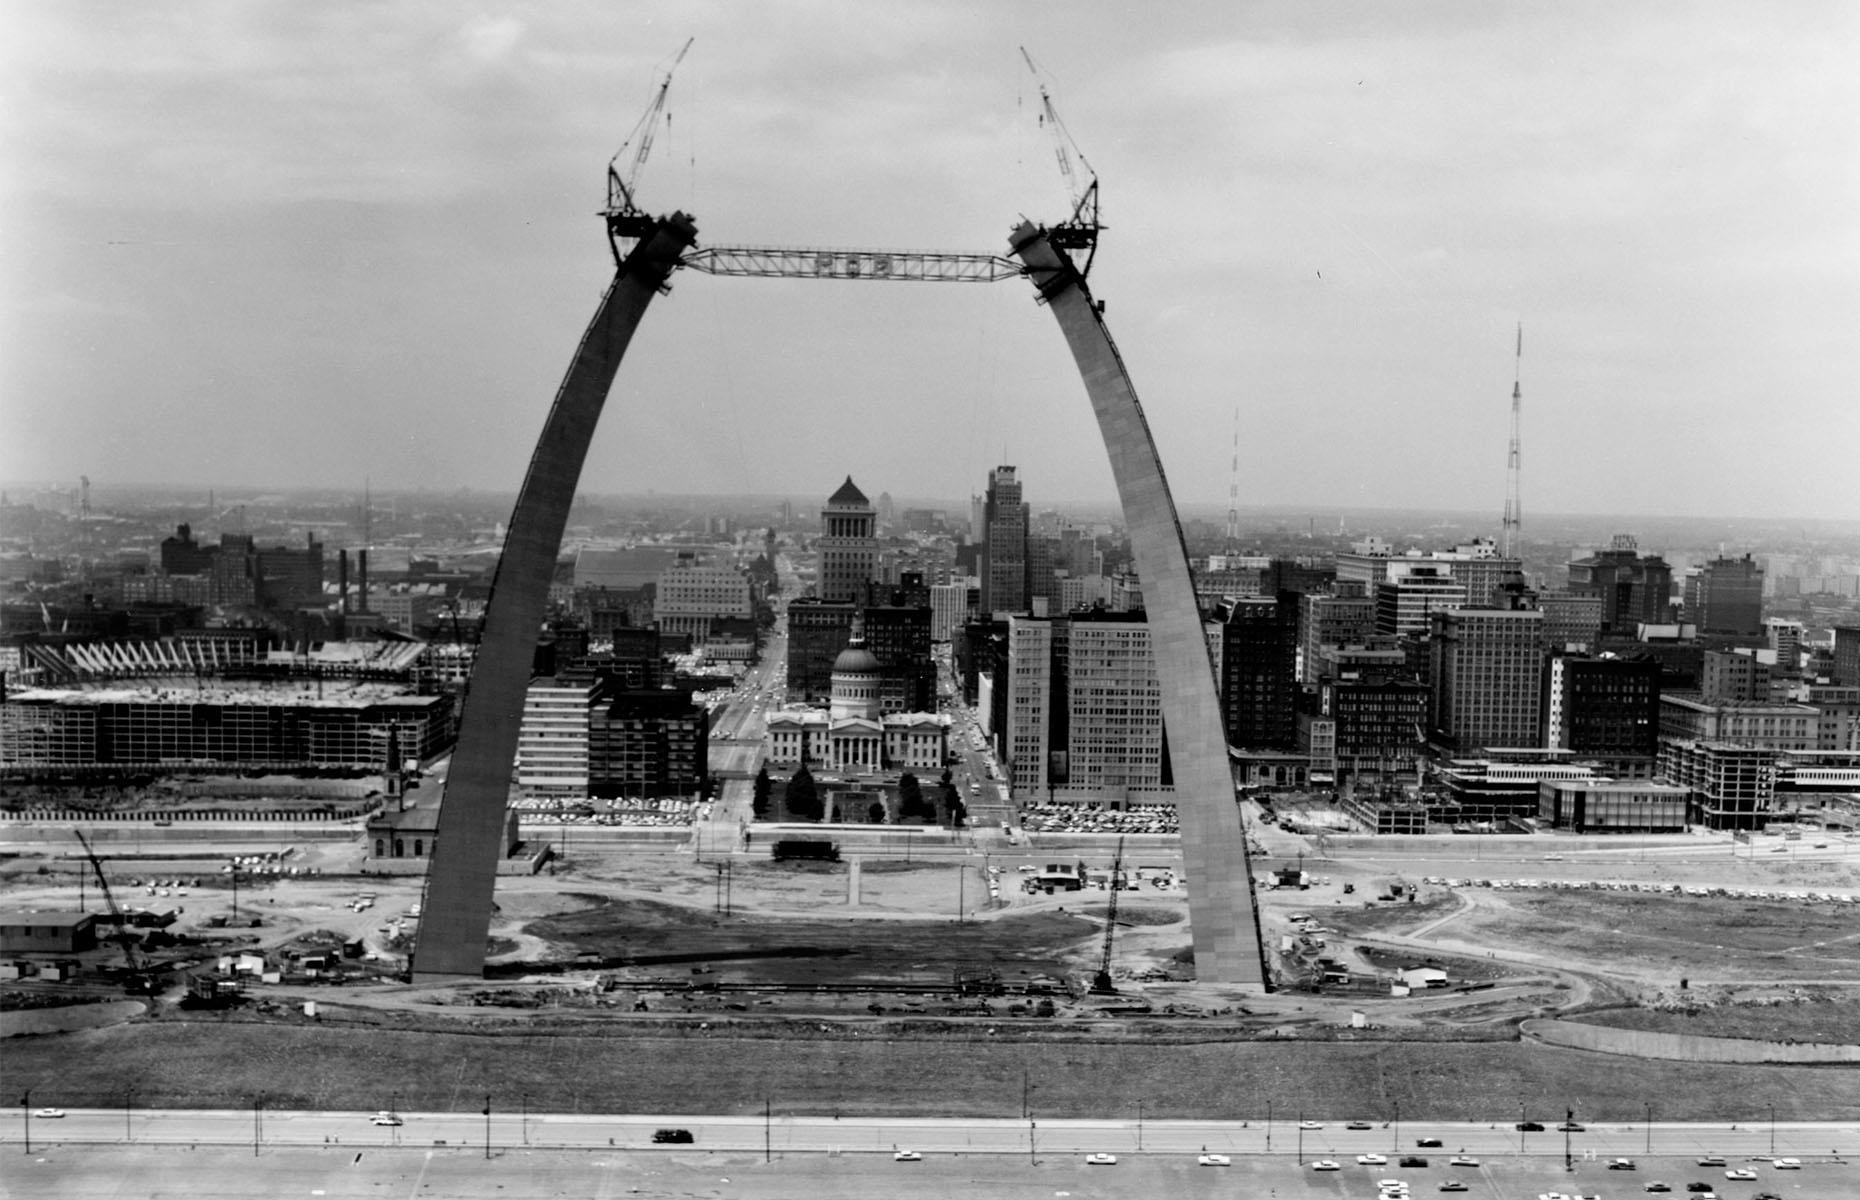 Slide 45 of 51: St. Louis' famous Gateway Arch was built between 1963 and 1965 and was created to symbolize the movement of settlers towards the American west, a concept pioneered by Thomas Jefferson. Pictured here towards the end of its construction in 1965, the arch's final keystone is thought to contain a time capsule filled with letters written by more than 760,000 local people.